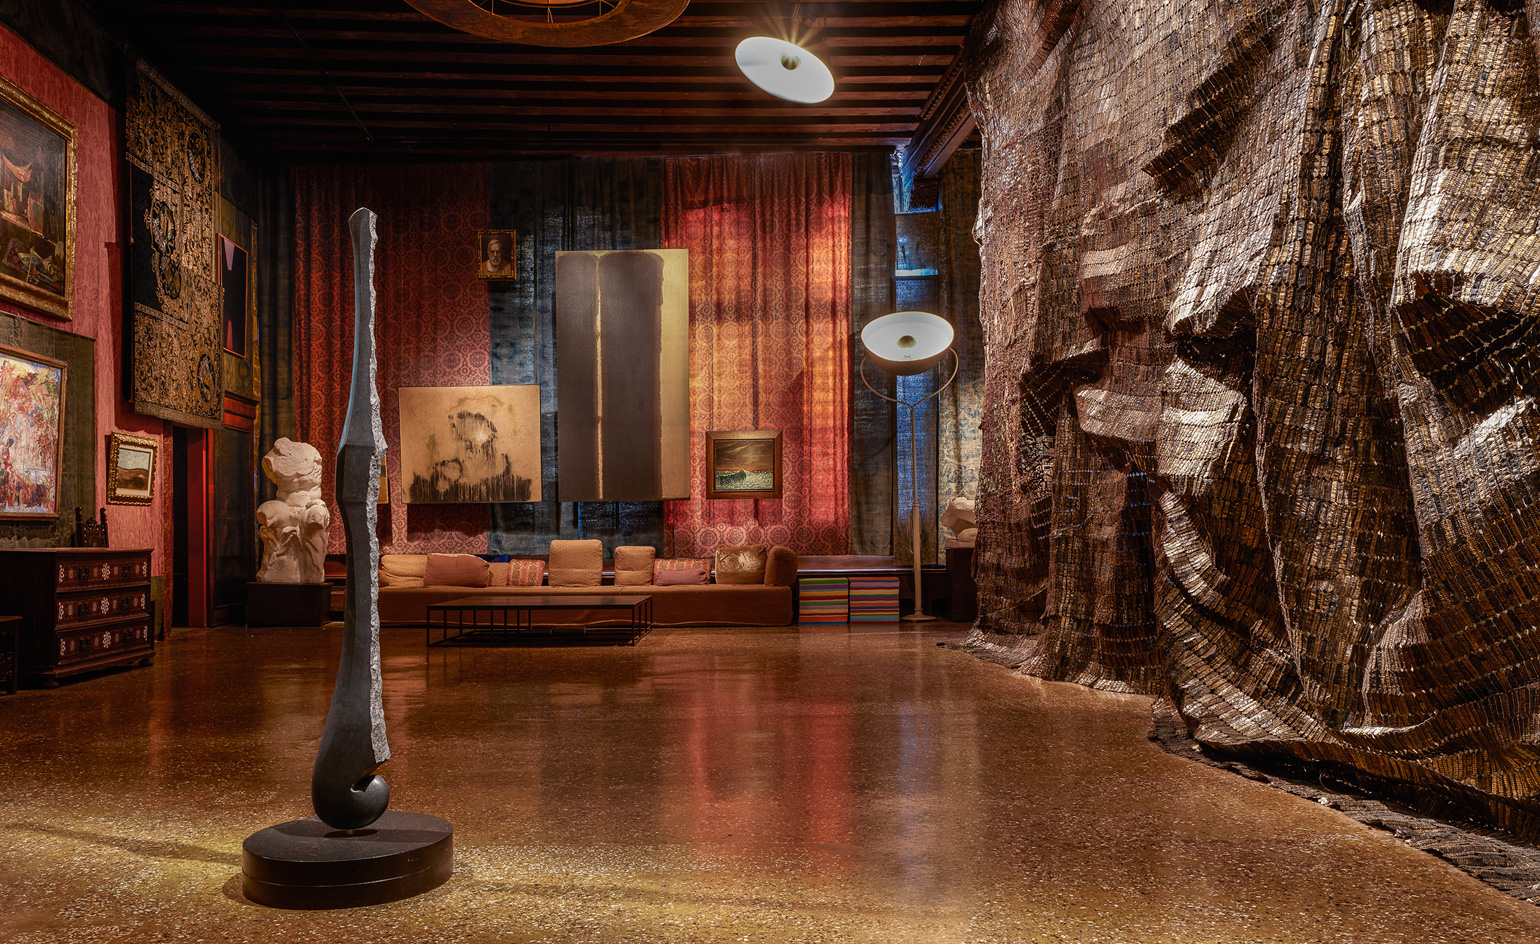 Spiritual as ever axel vervoordt reflects on his final exhibition spiritual as ever axel vervoordt reflects on his final exhibition at palazzo fortuny wallpaper sisterspd